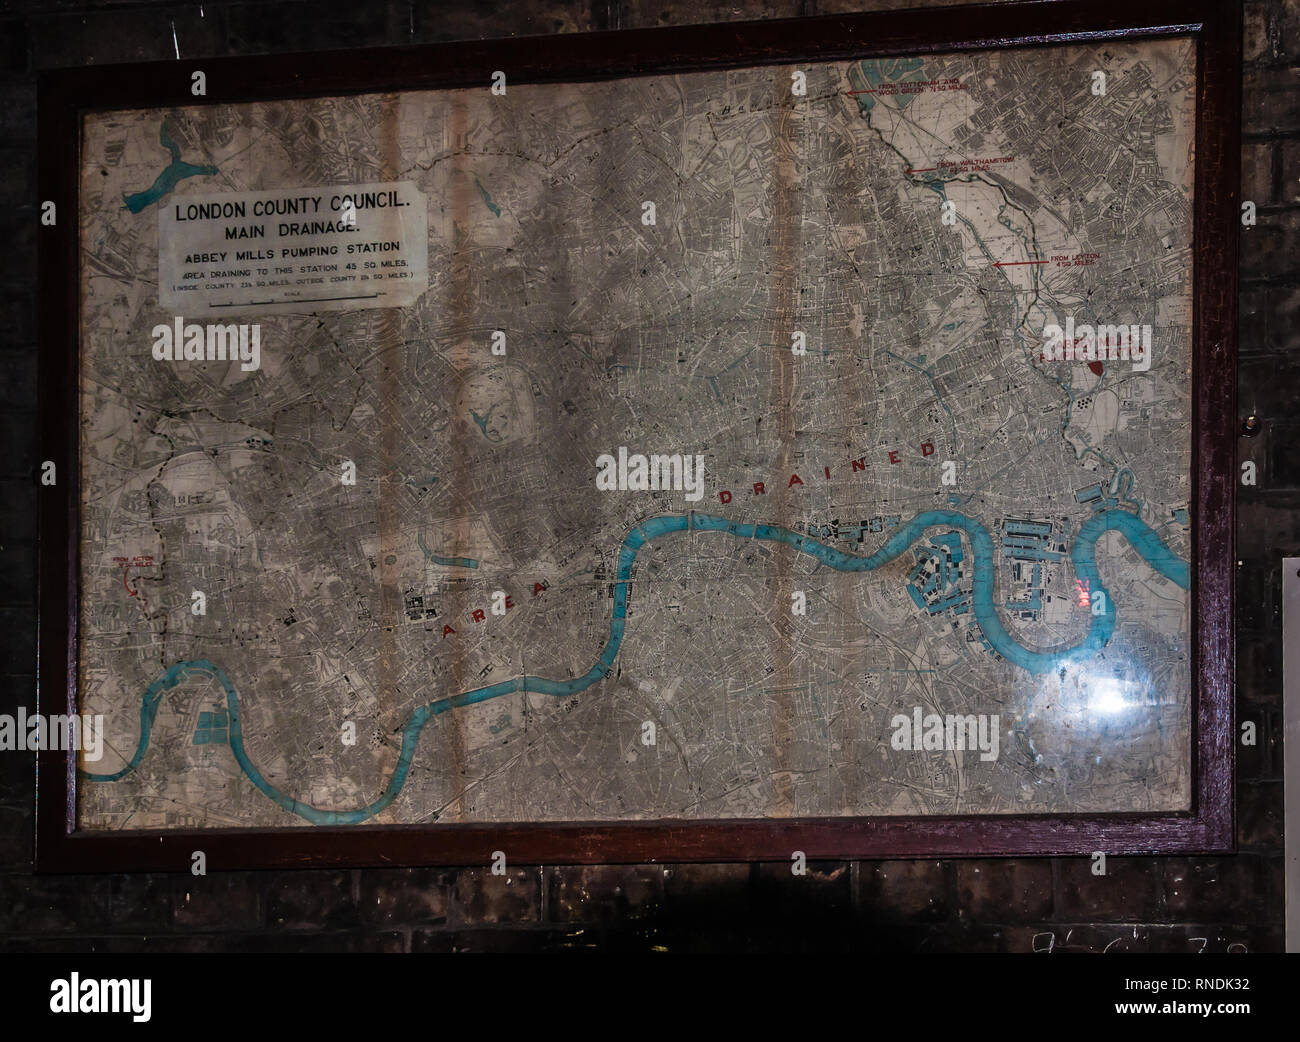 Map of main drainage Abbey Mills Pumping Station, Stratford, London, England, Uk - Stock Image